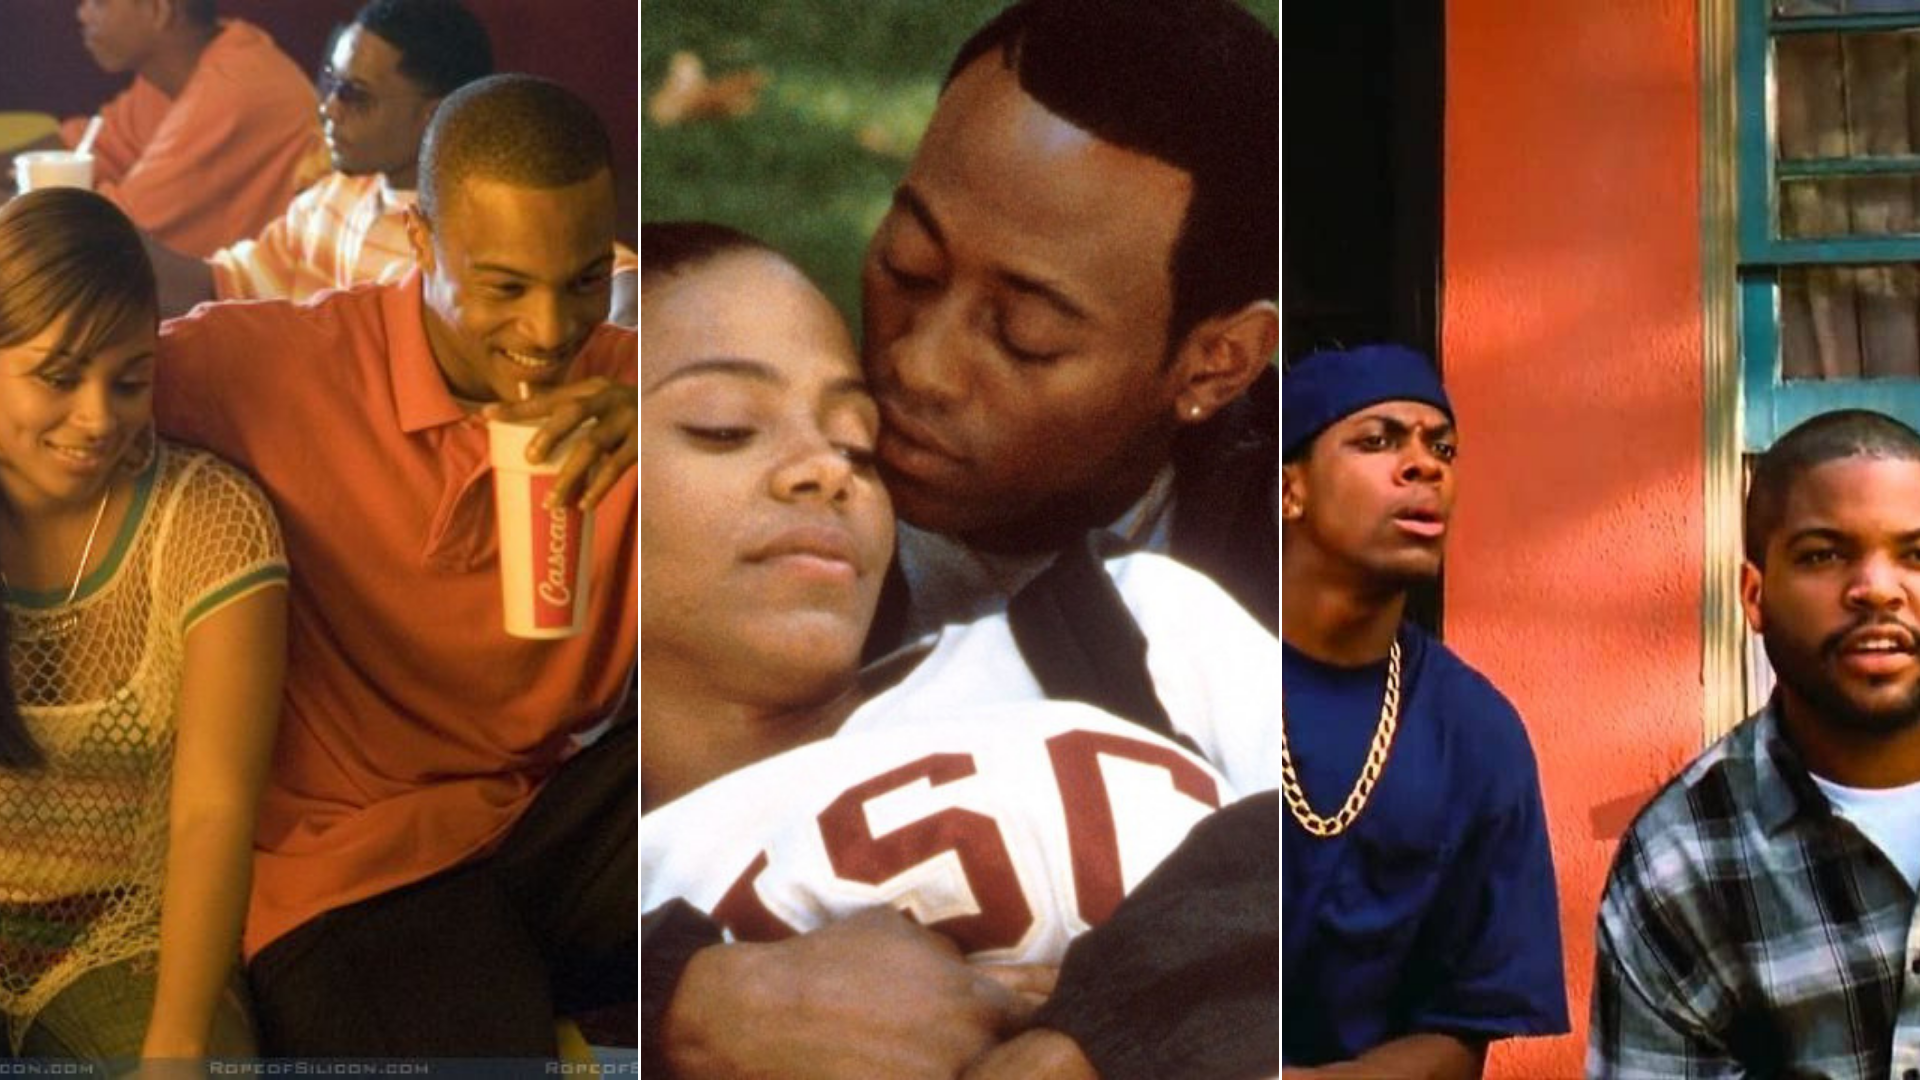 100 Movies You've Probably Watched More Than Once If You're A Black Millennial